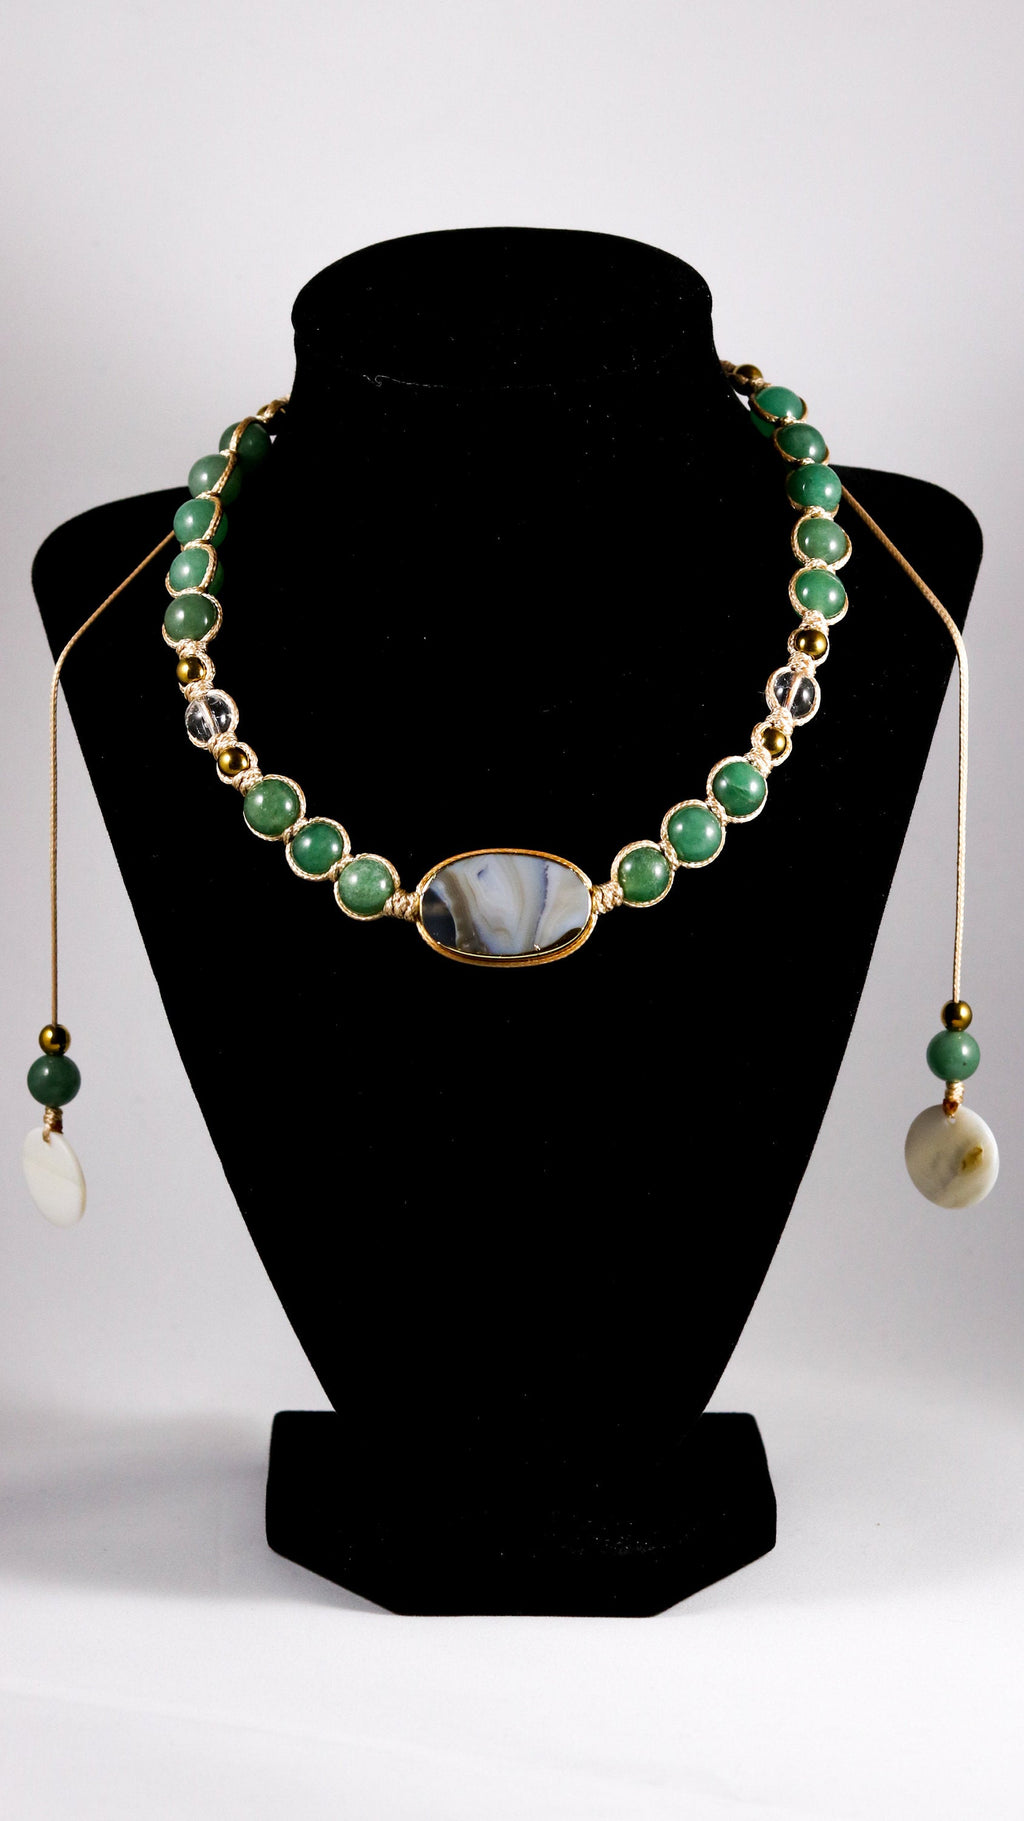 Oval Agate with Green Aventurine, Quartz and Hematite macrame necklace - BurzanDesign